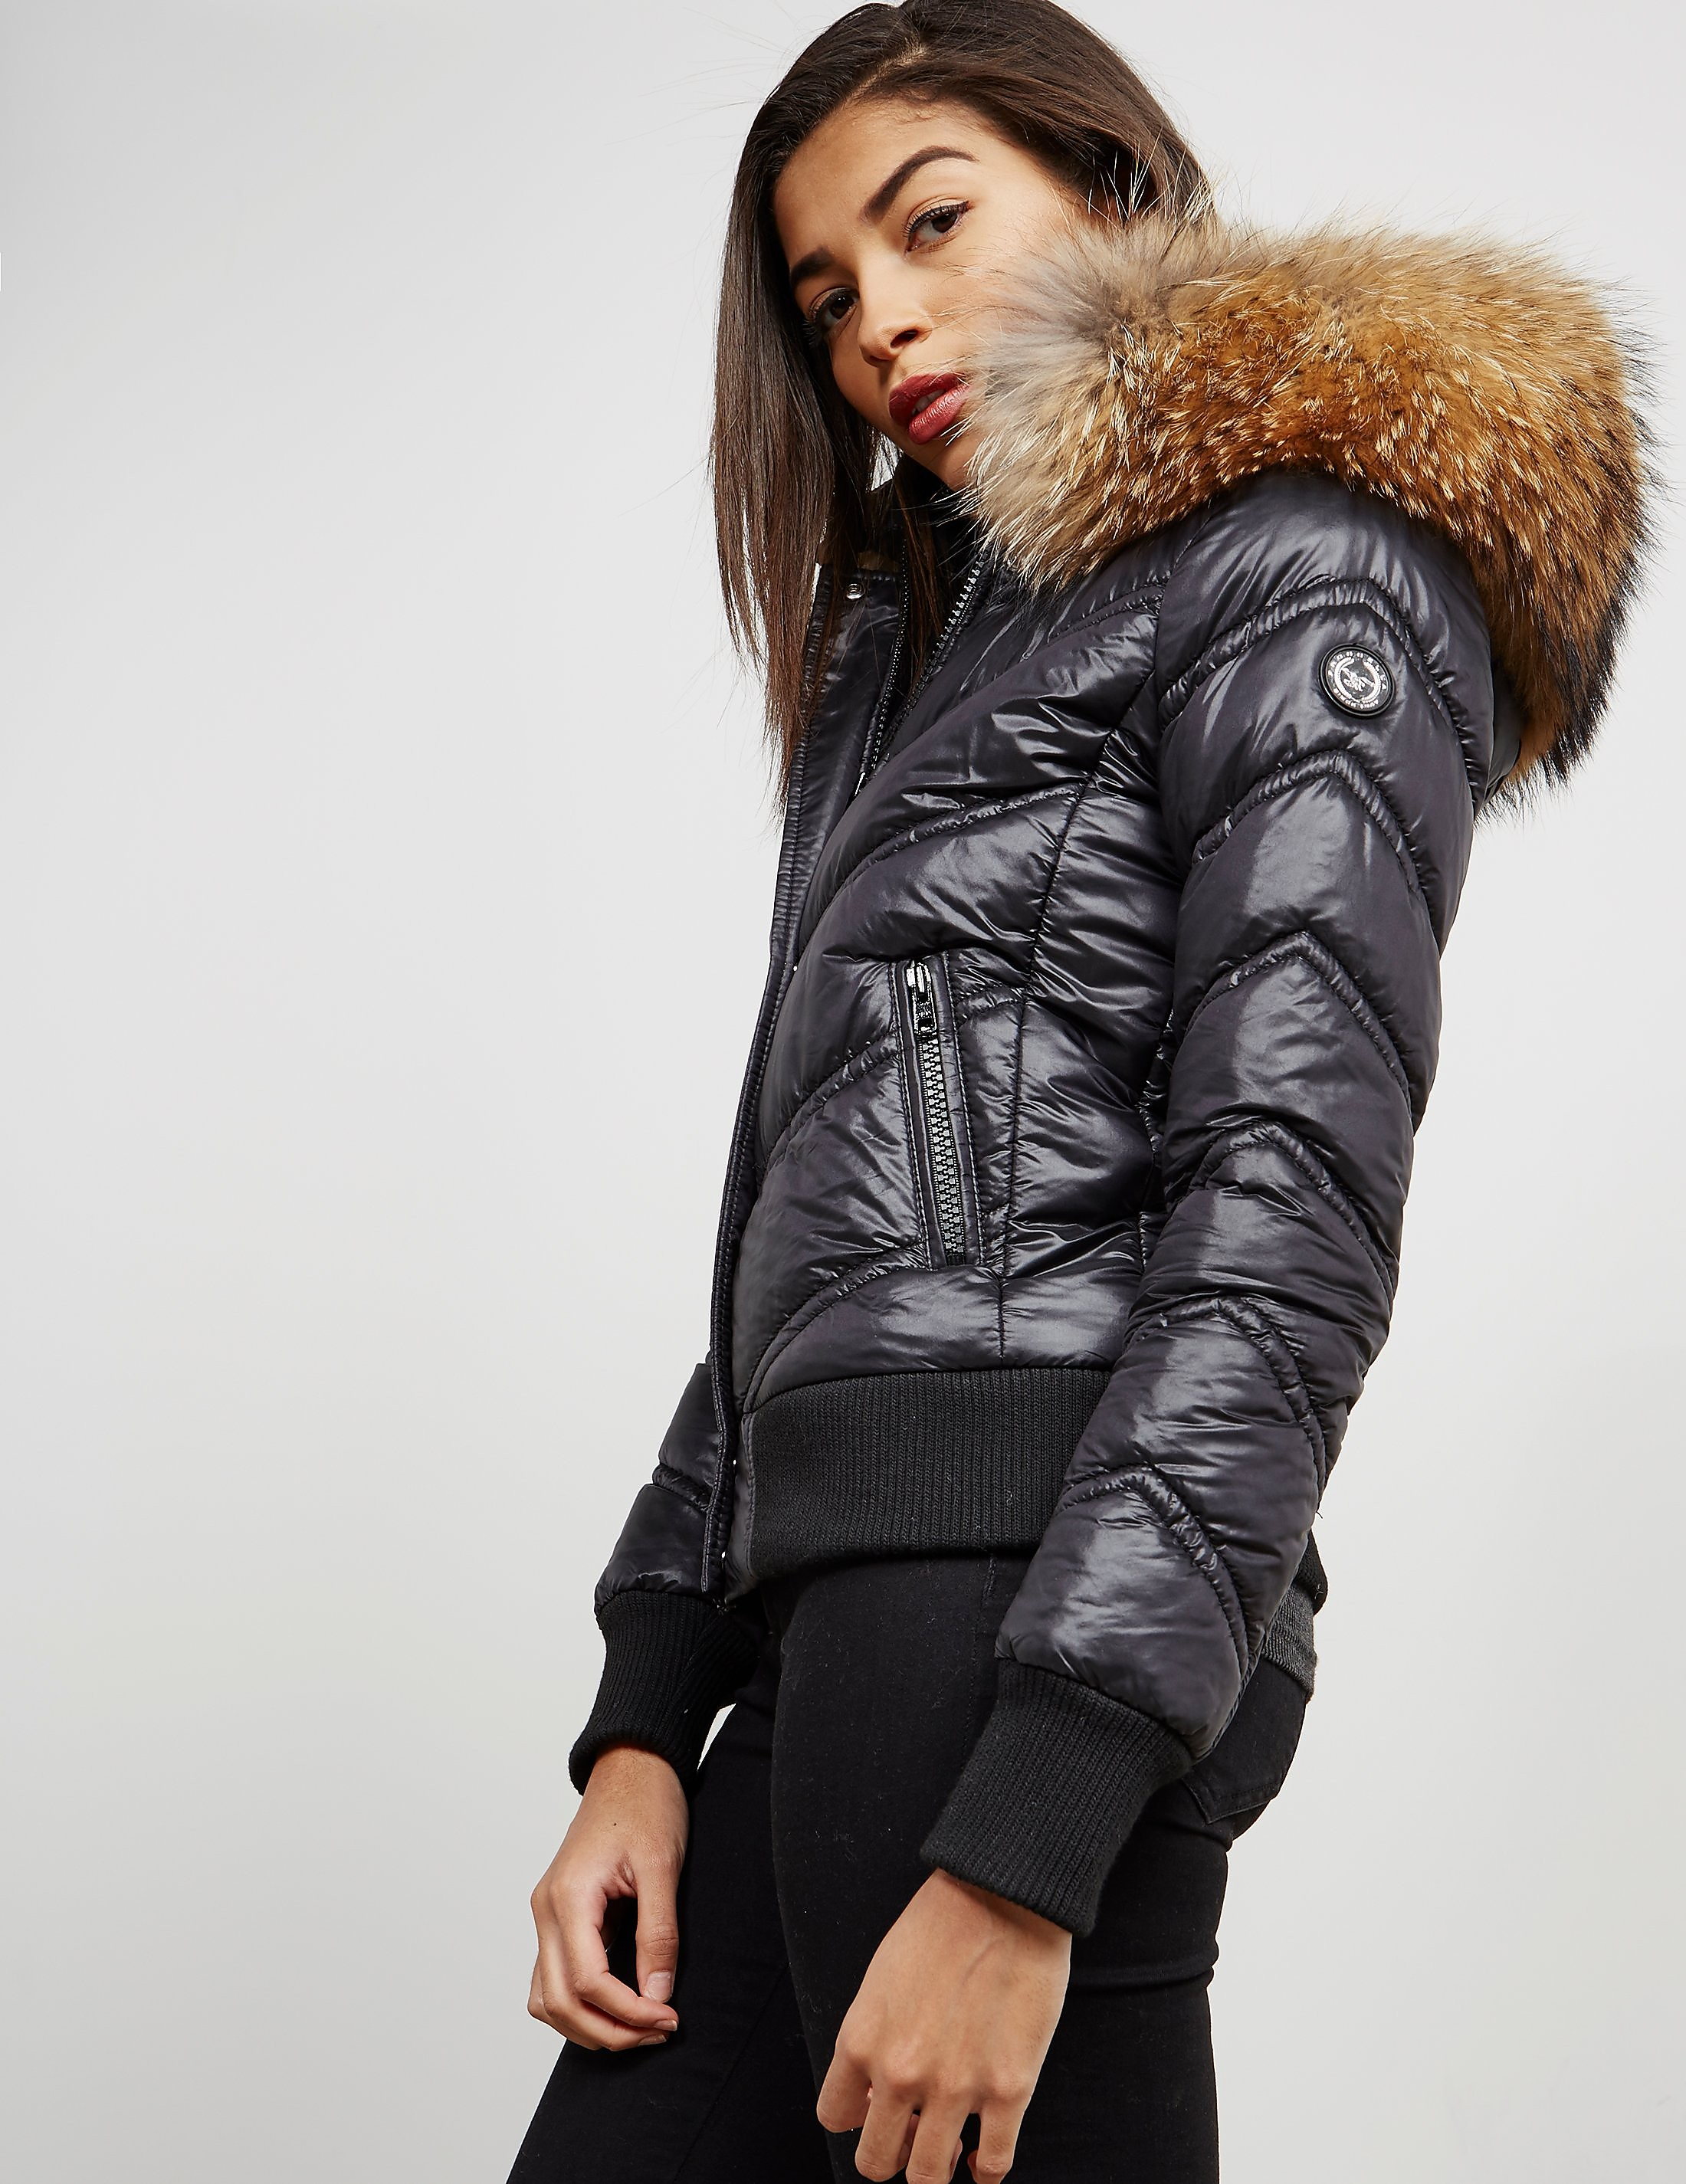 Froccella Padded Bomber Jacket